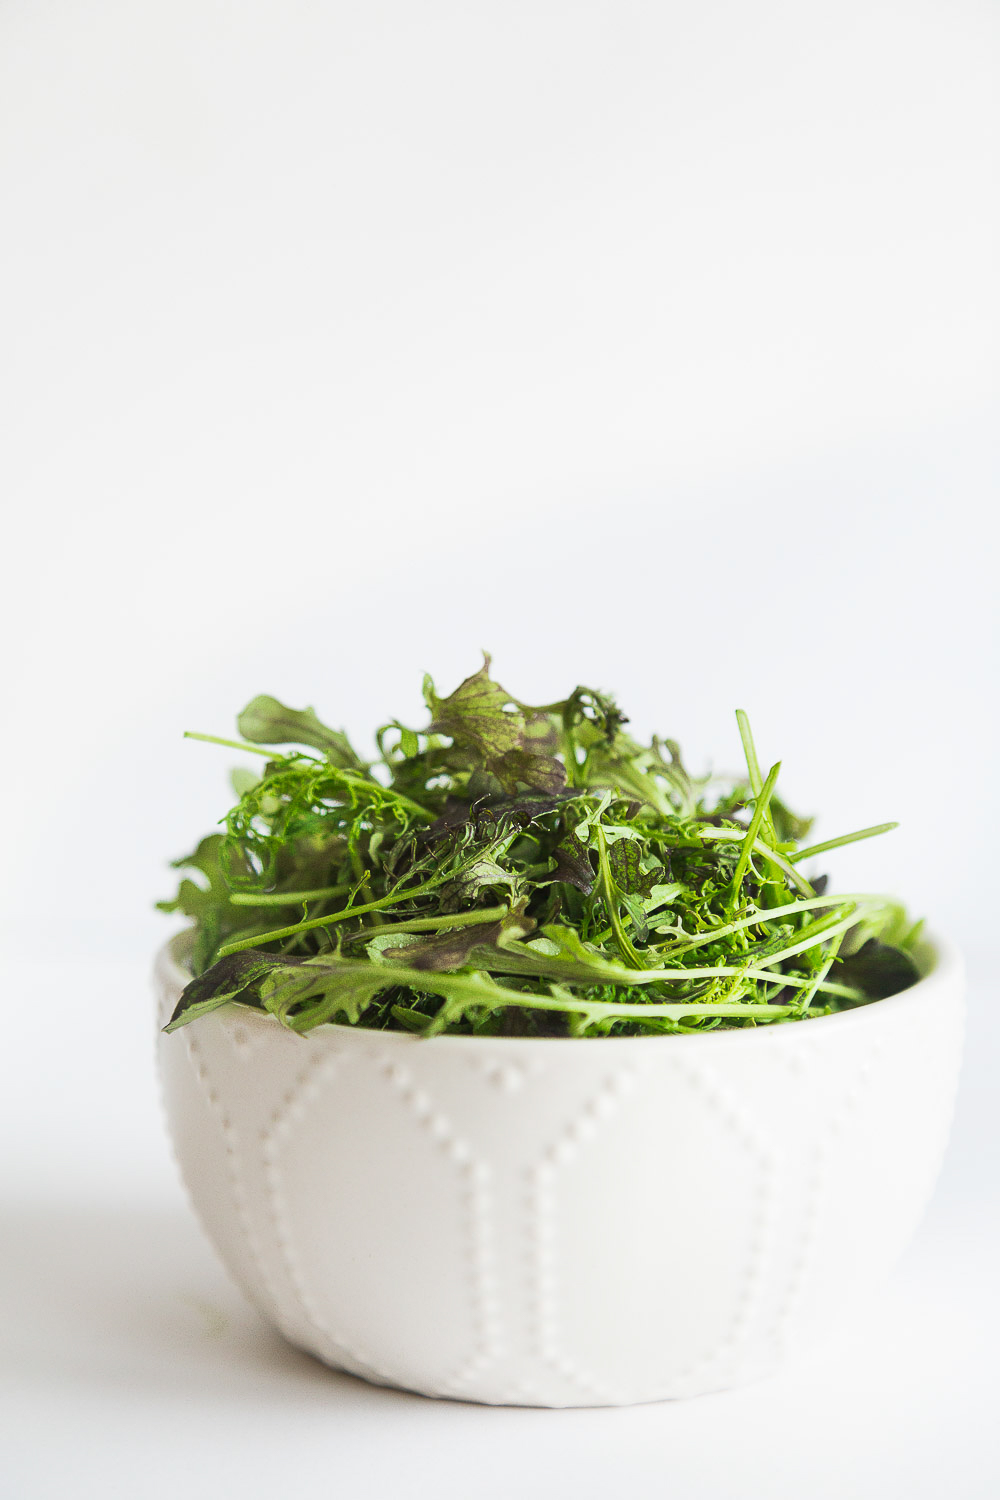 baby mustard greens in a bowl